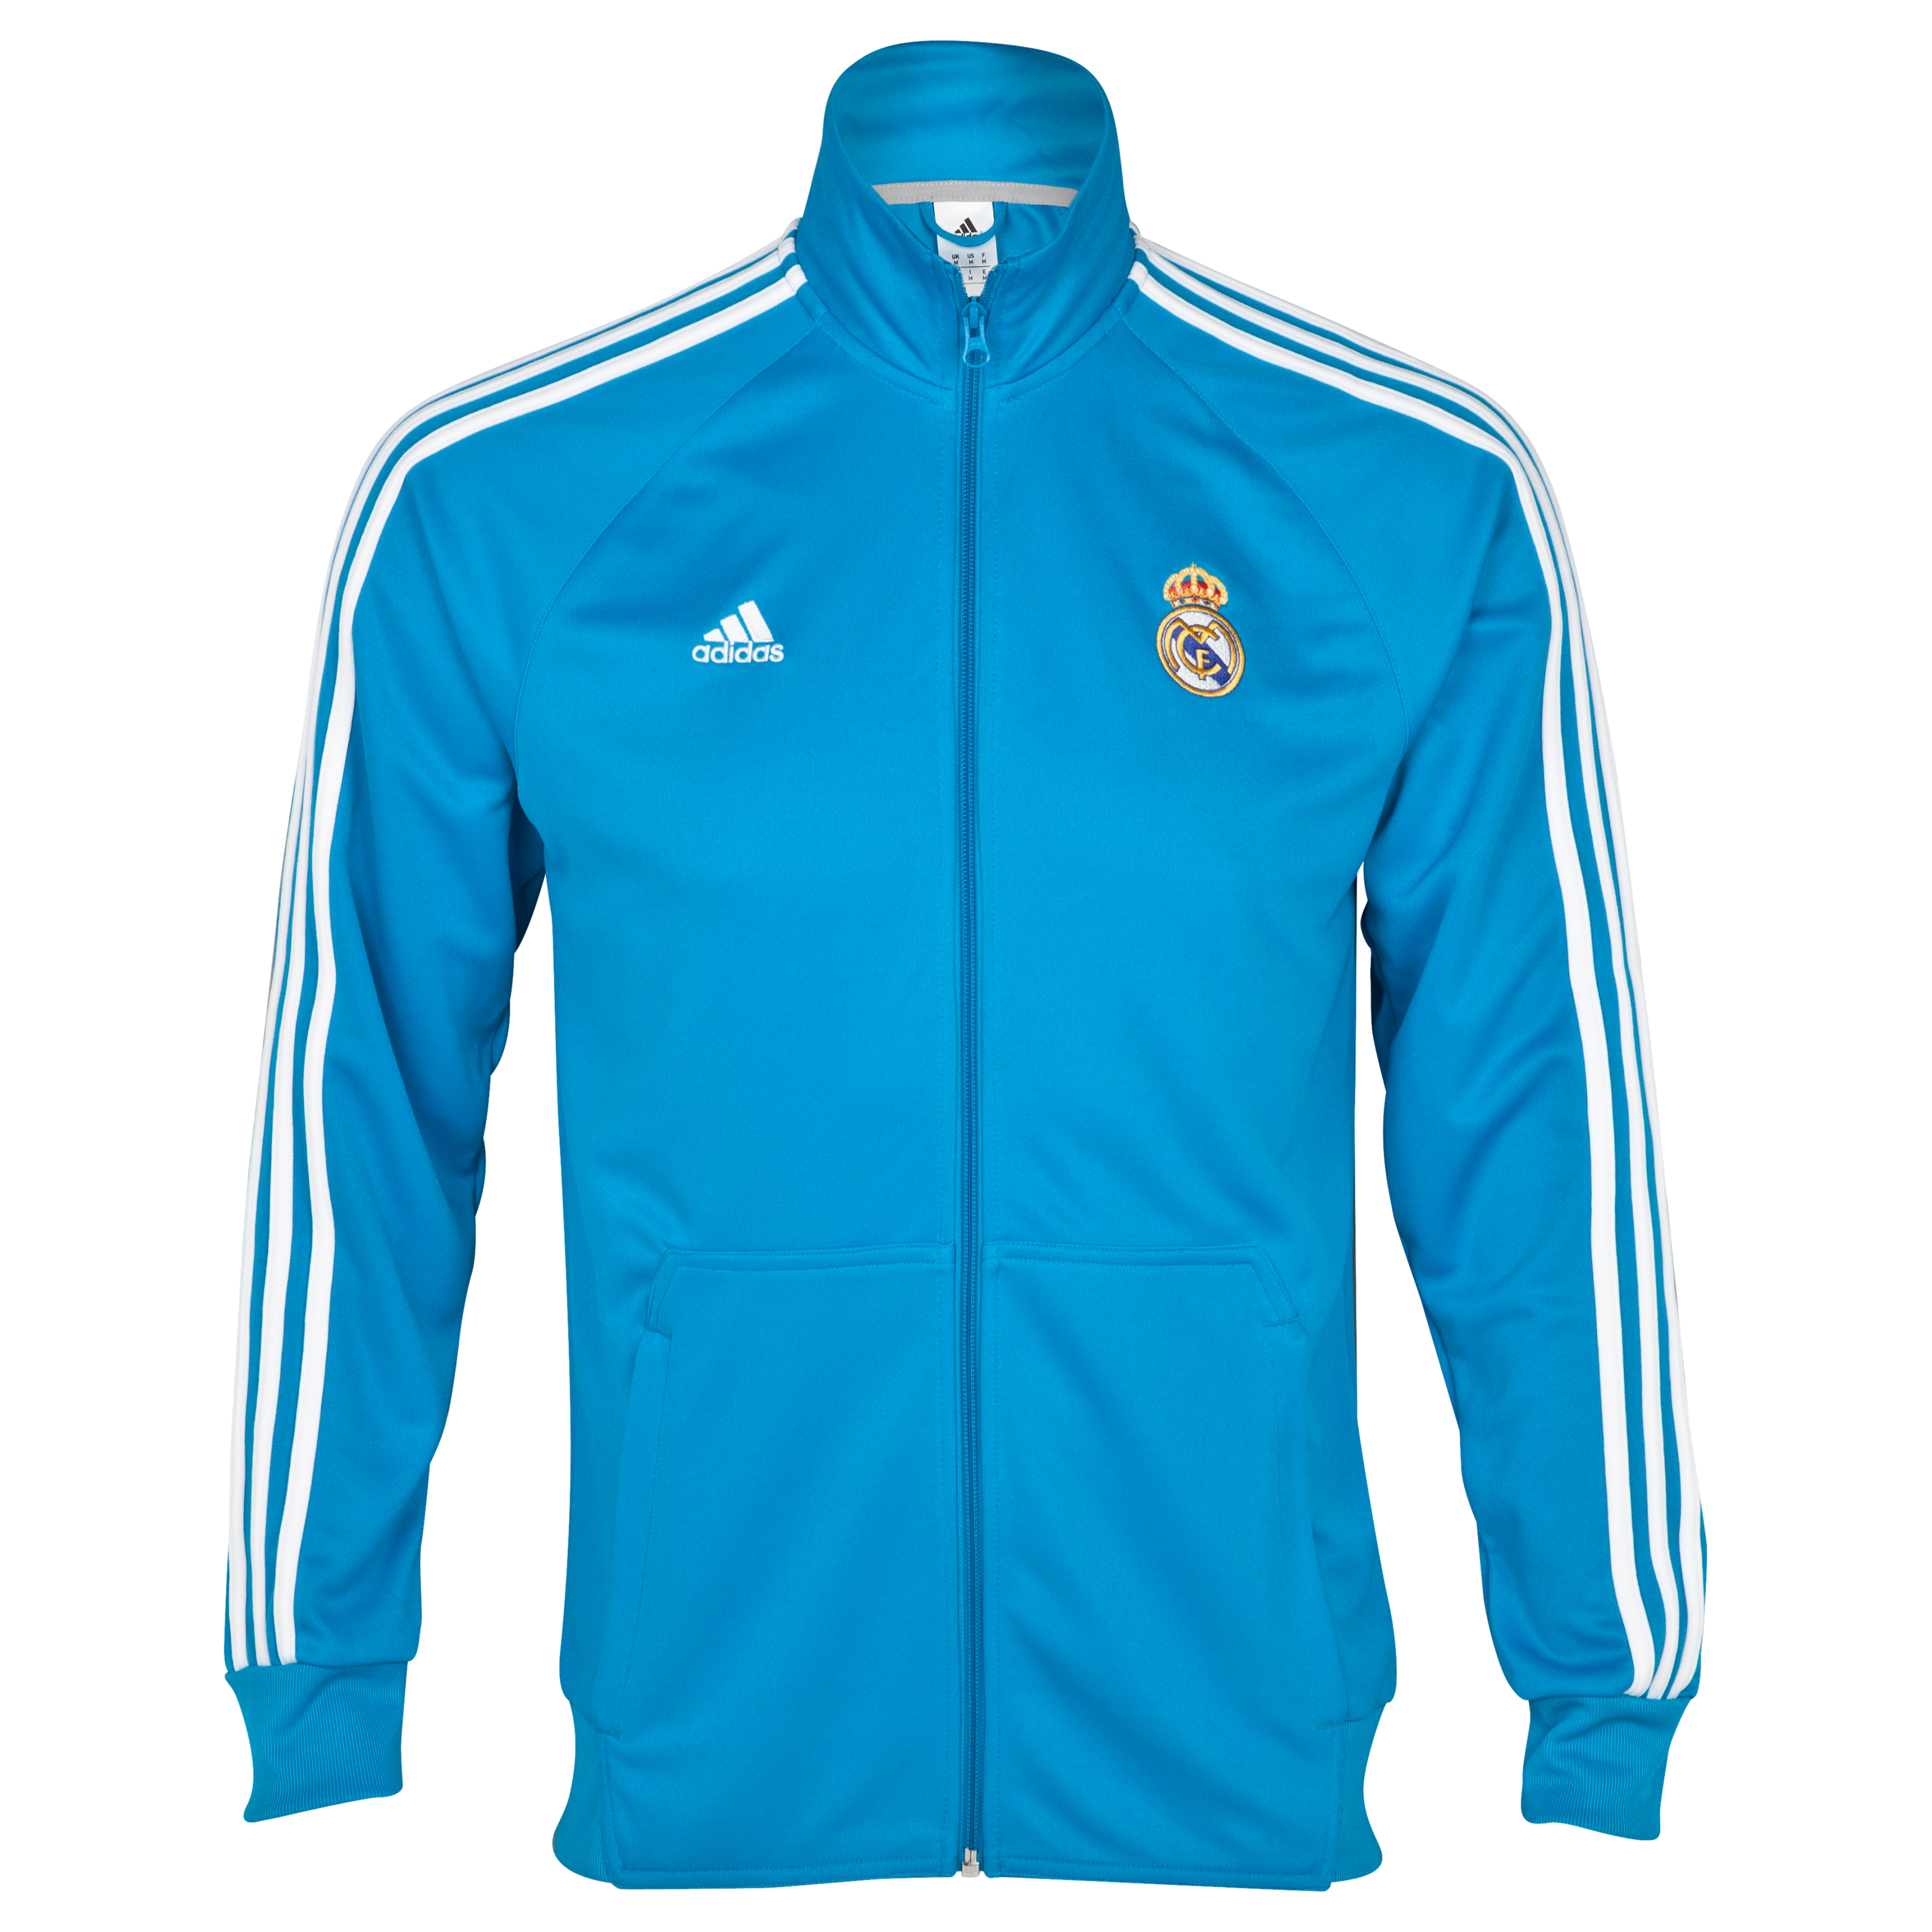 Real Madrid Core Track Top - Turquoise/White